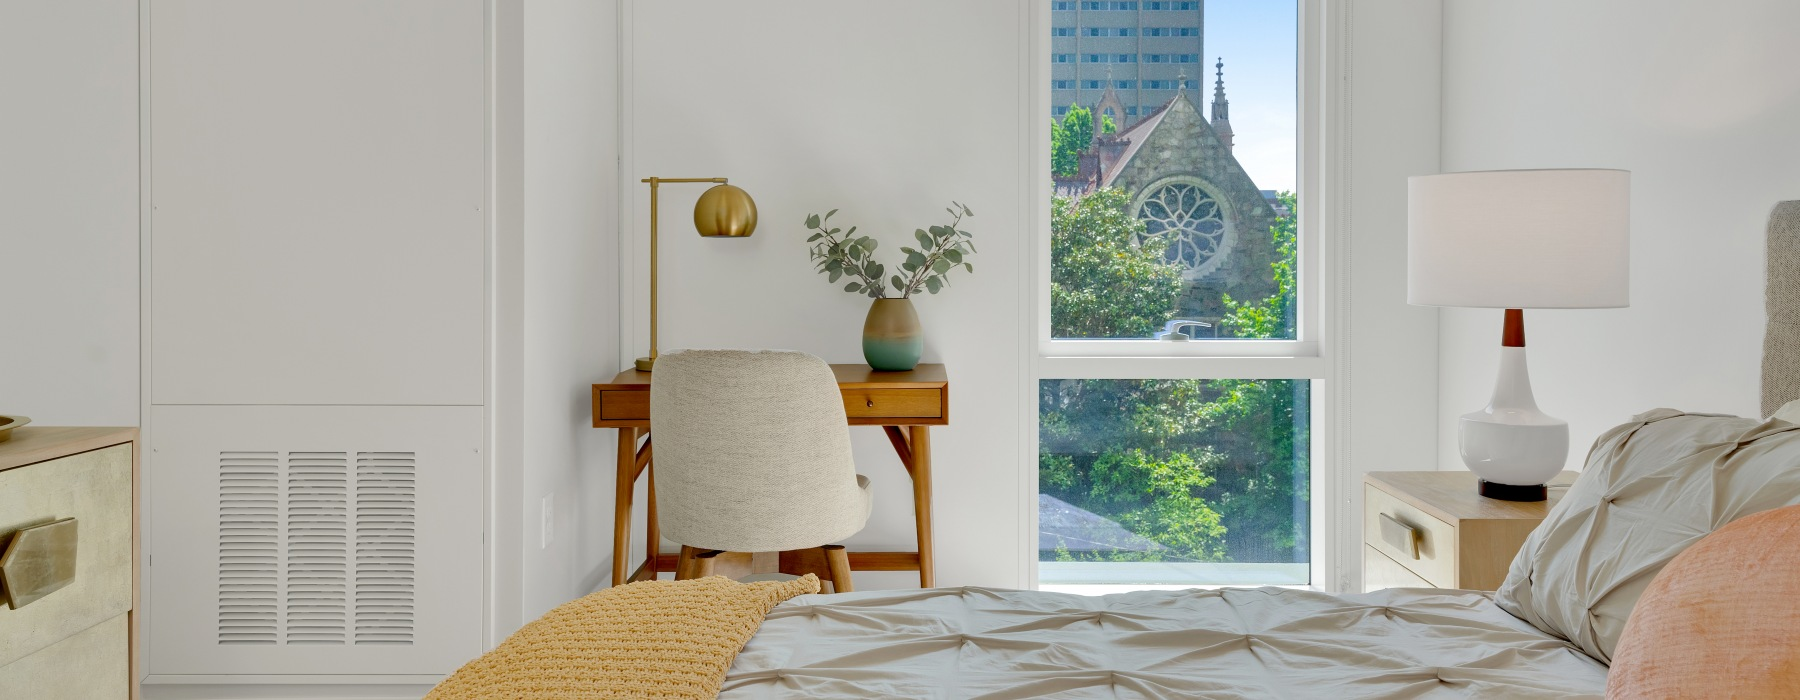 bedroom with natural lighting through high window and city views